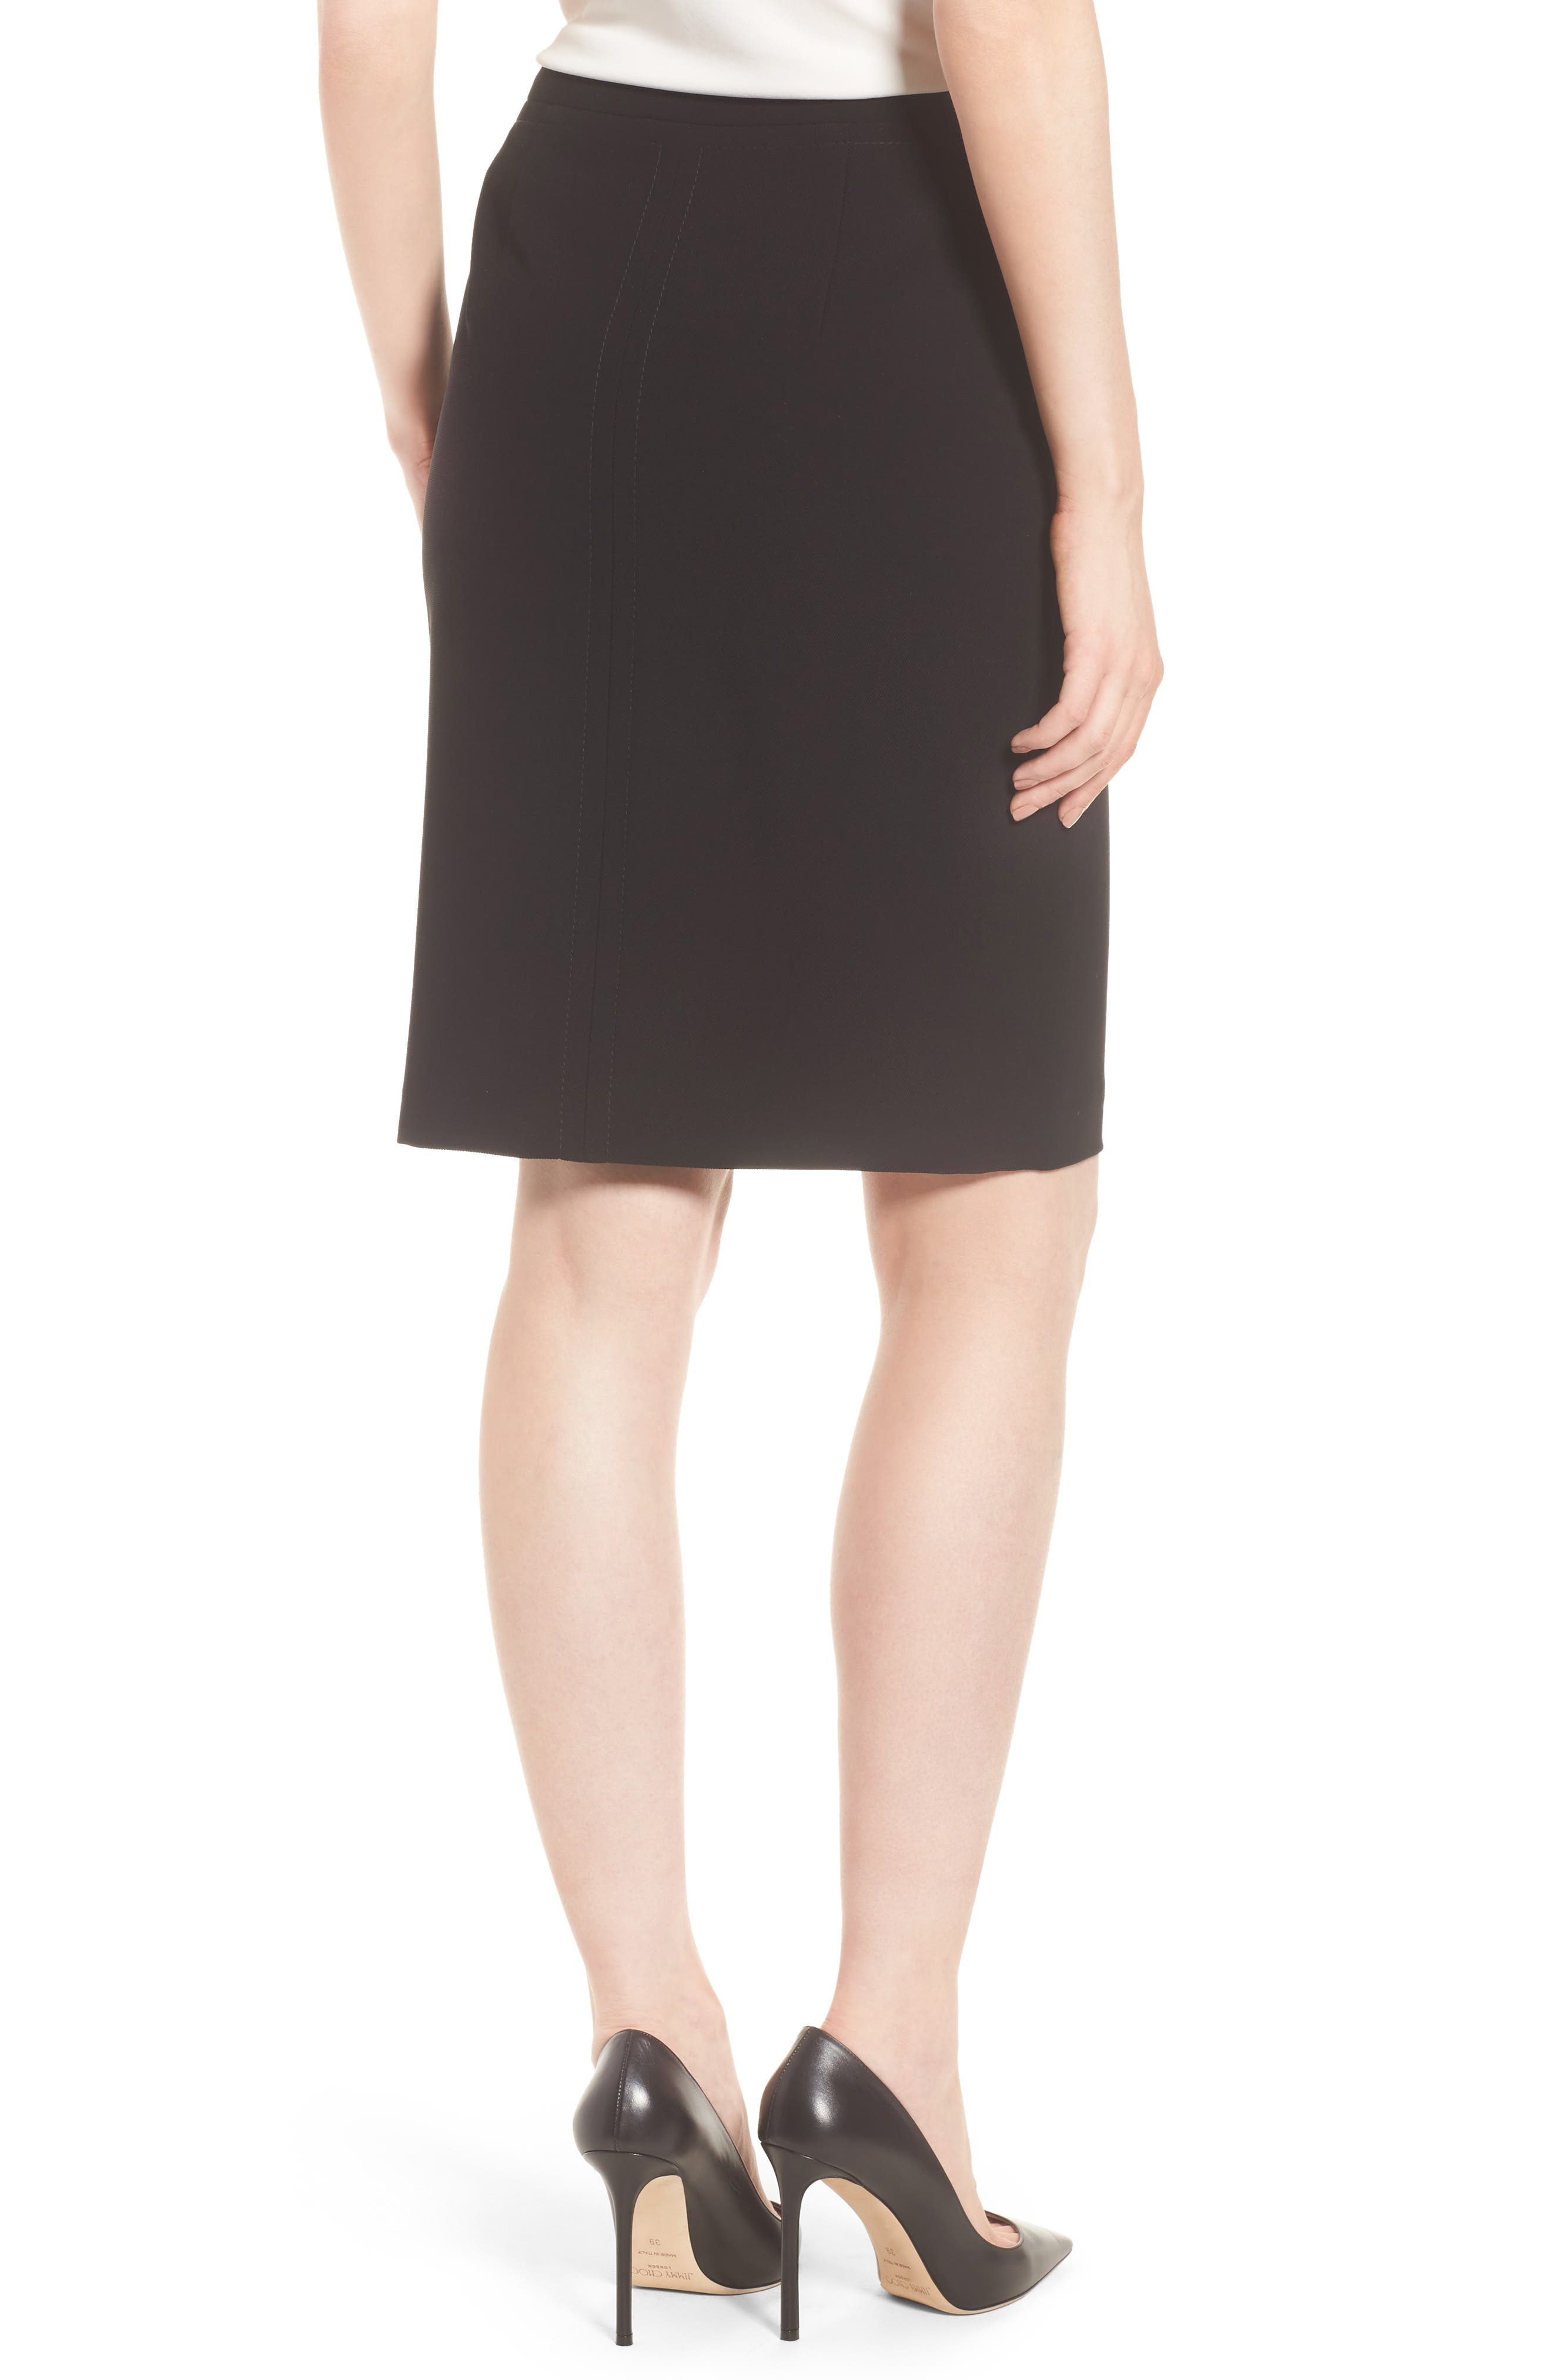 Vuriona Pencil Skirt,                             Alternate thumbnail 2, color,                             Black